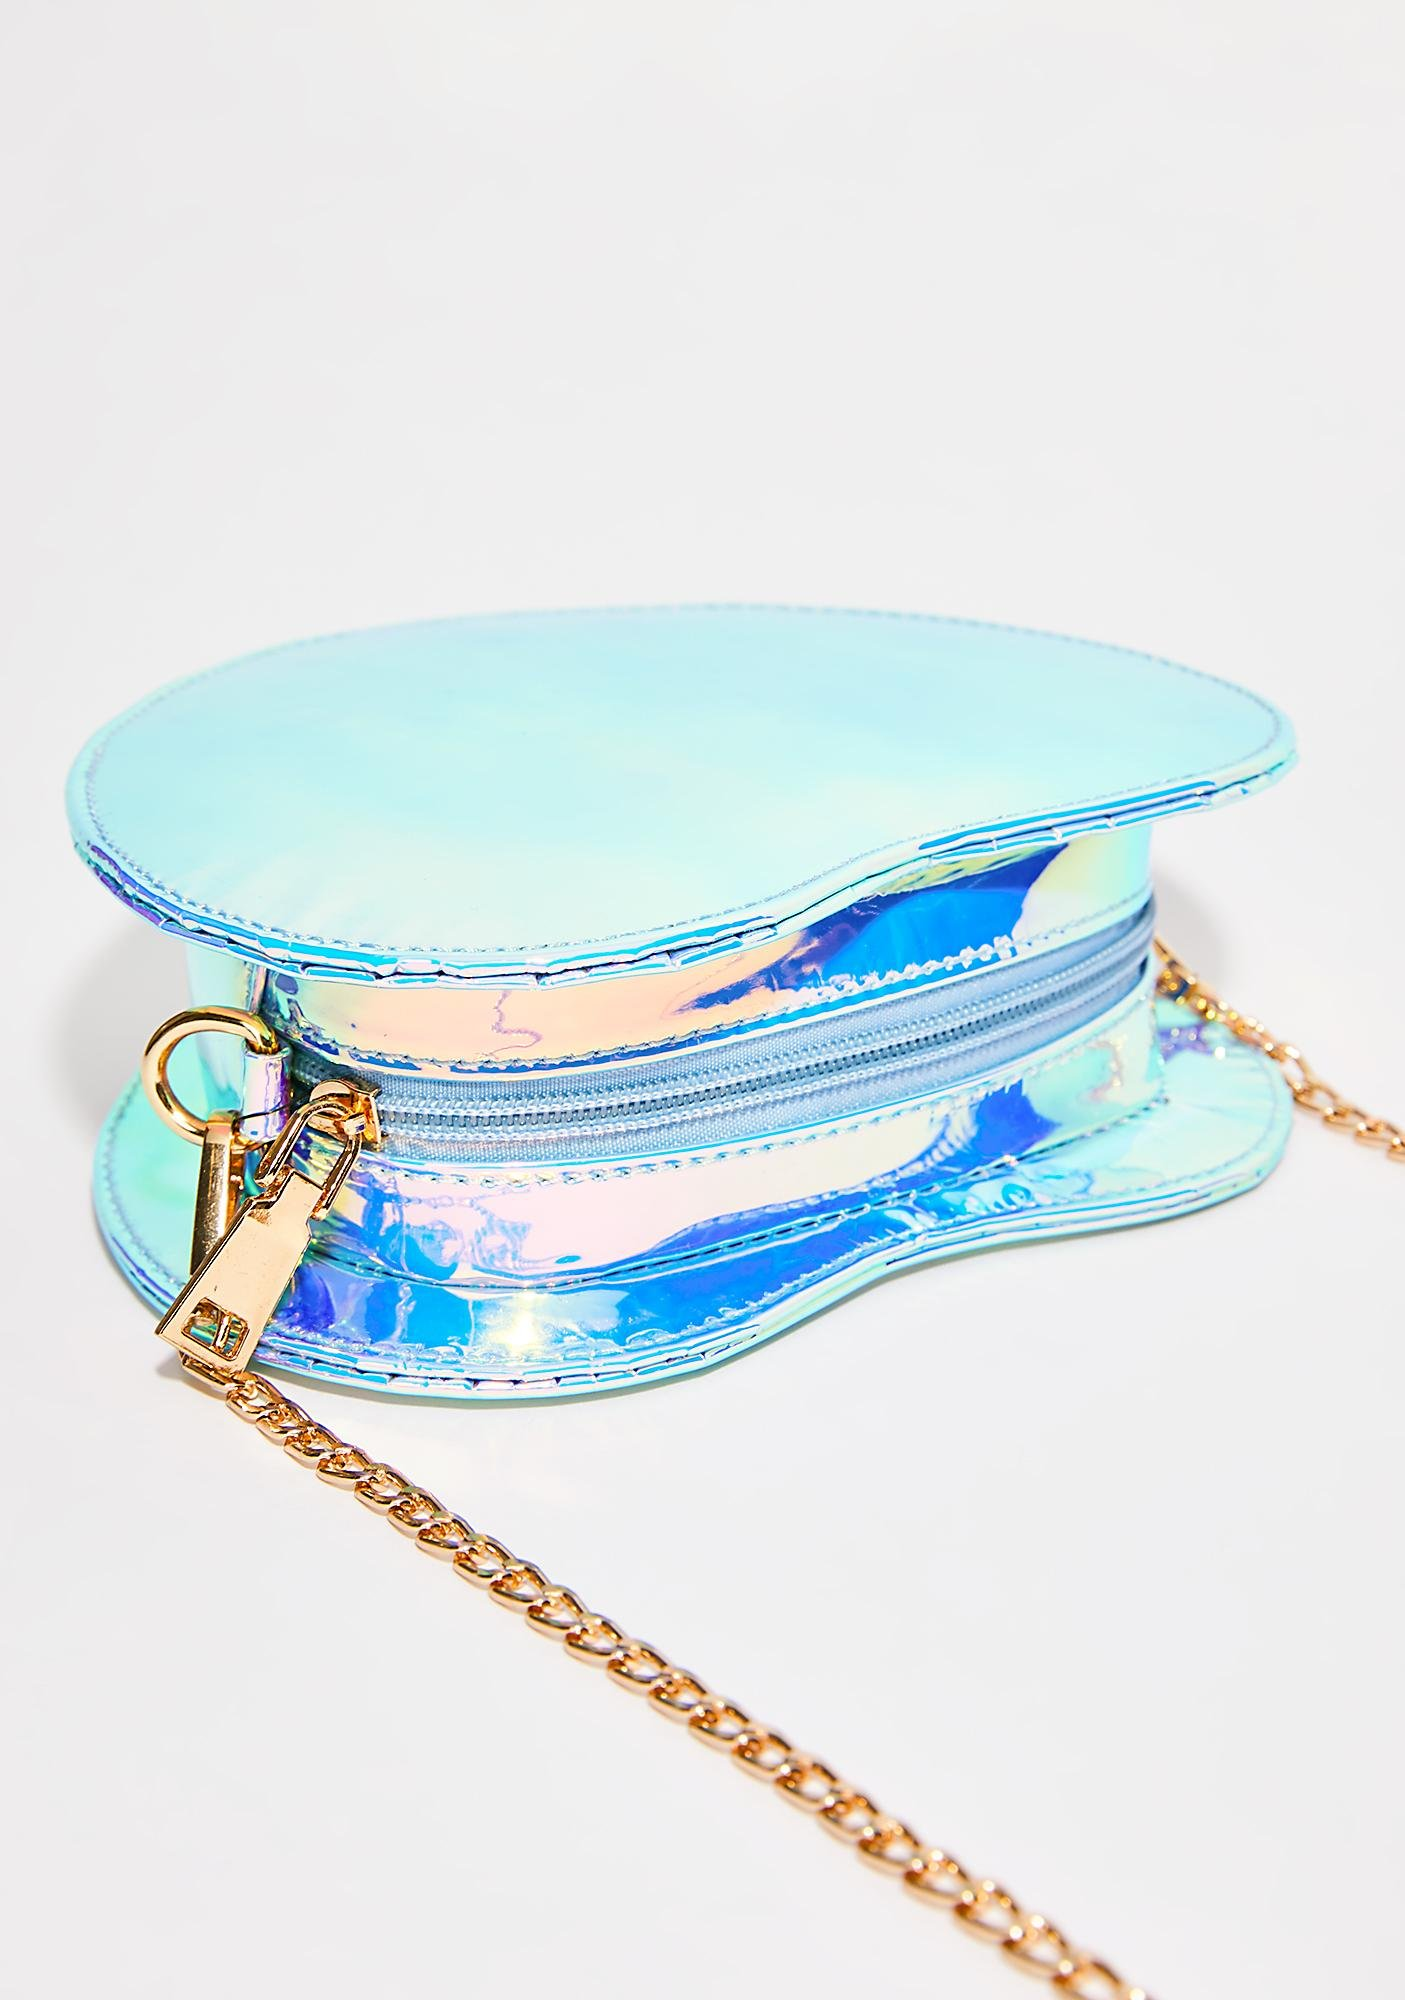 Cosmic Feelin' The Love Crossbody Bag